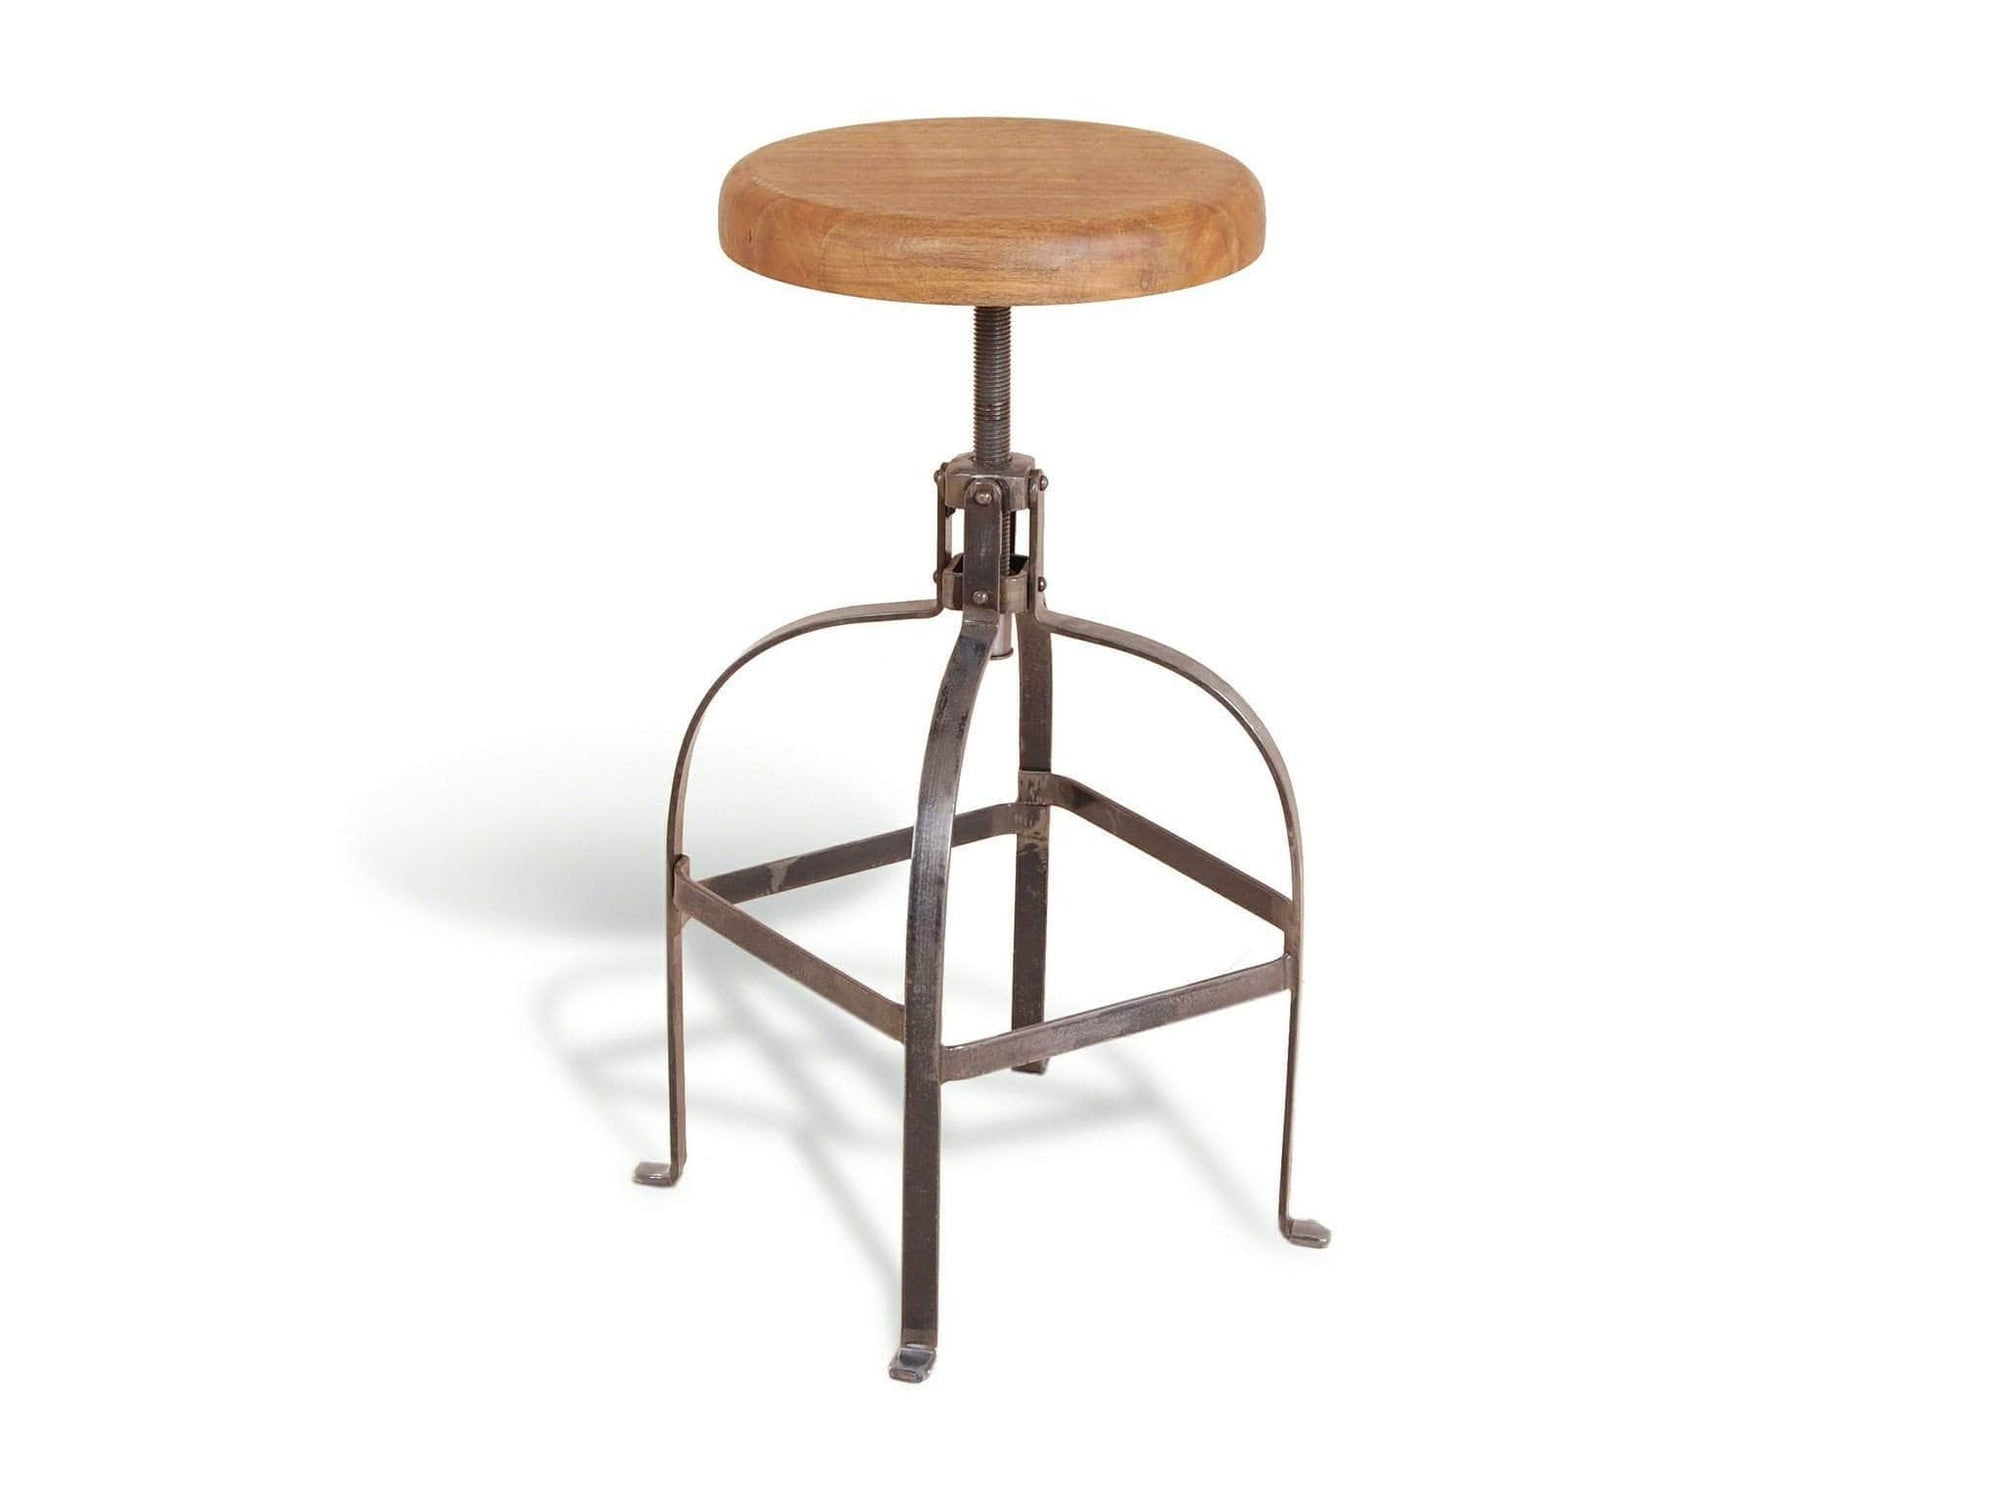 Industrial style stools with core screw to adjust seat height